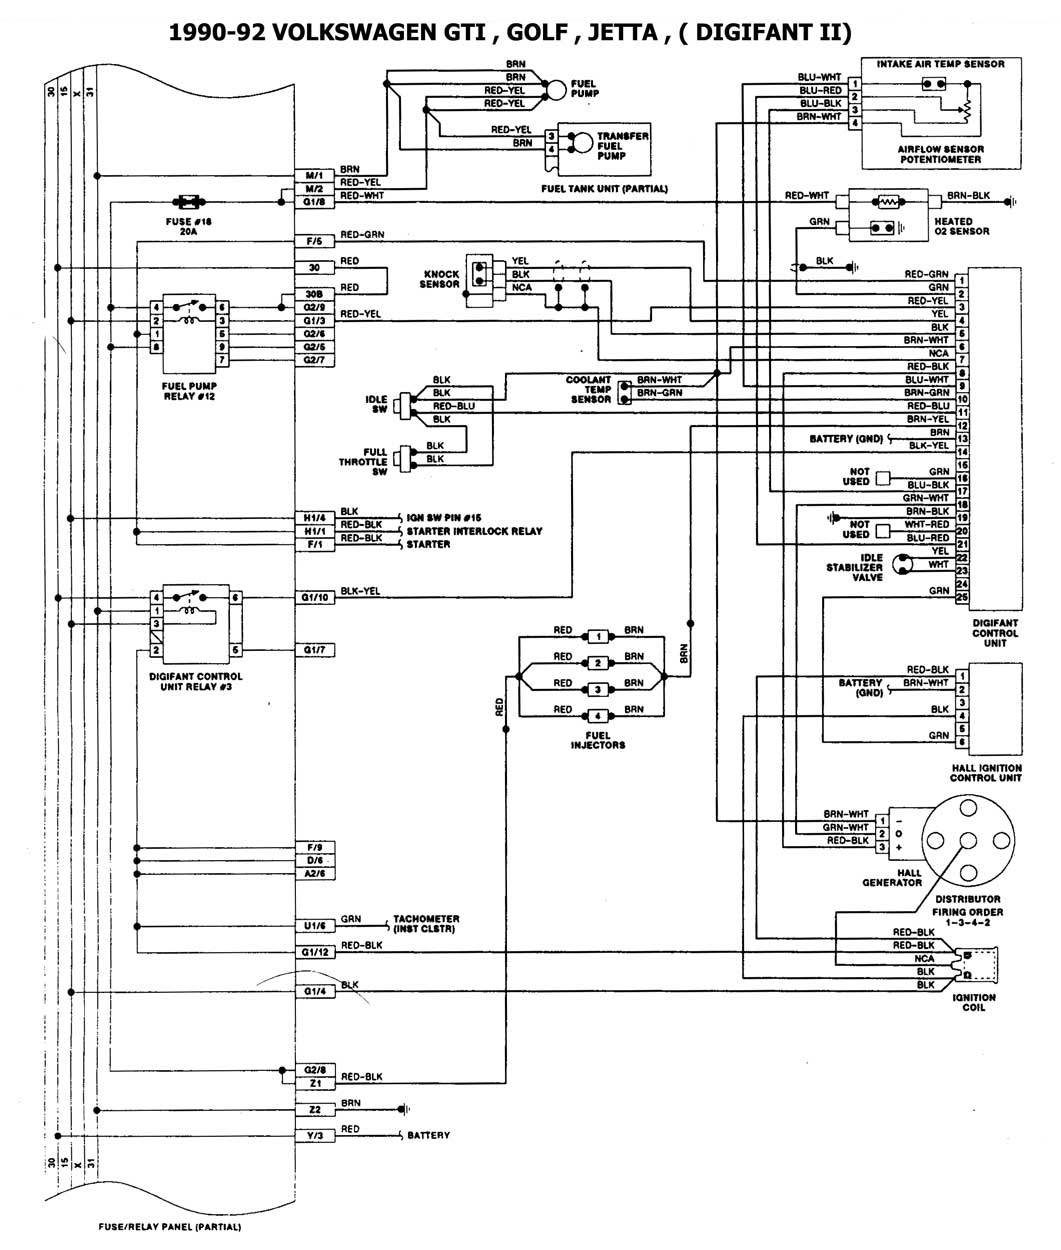 diagrama de ecu vw jetta 1996 1 8l